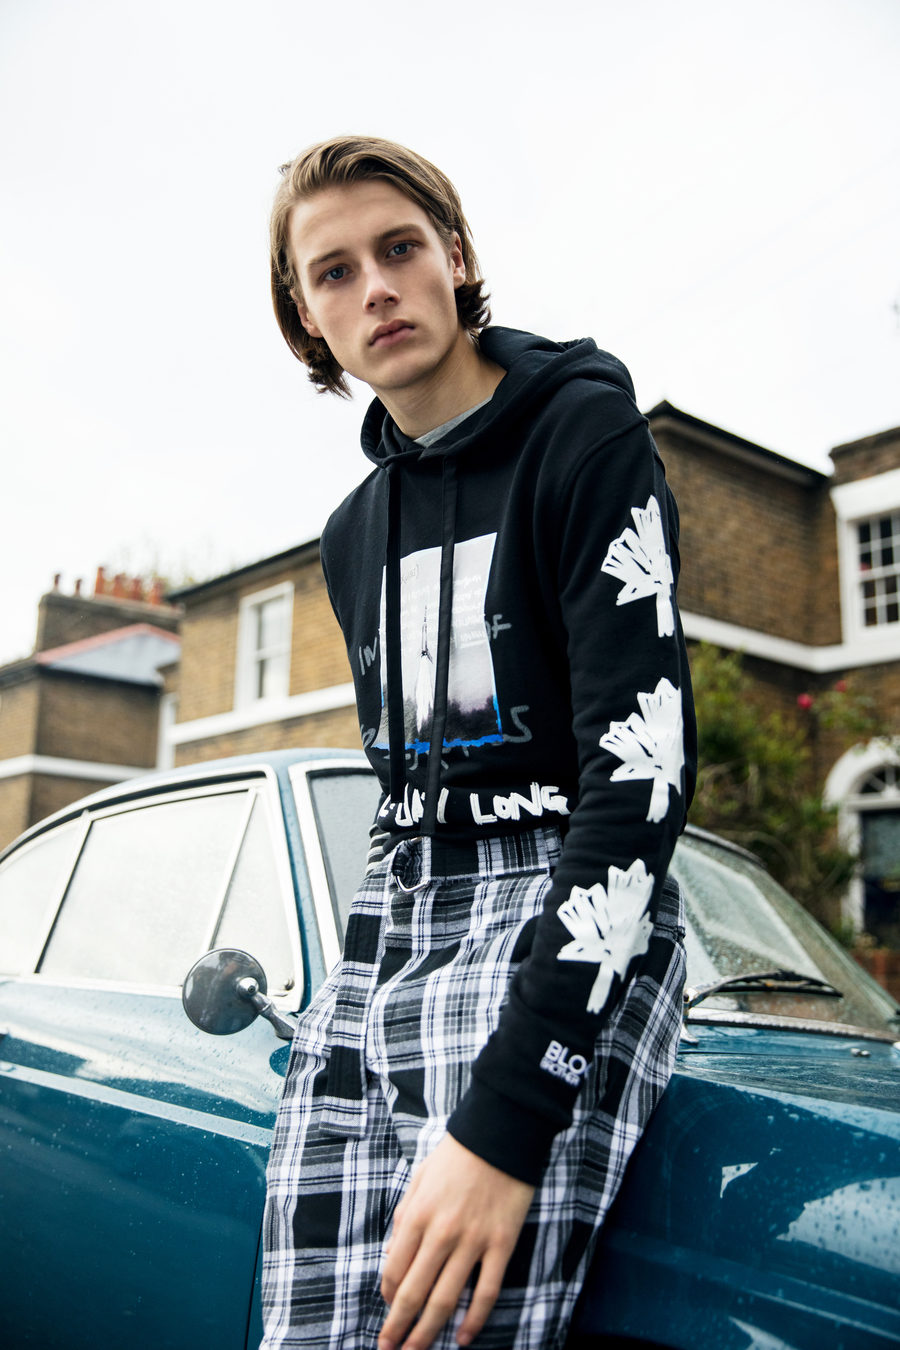 Blood Brother x Holt Renfrew Capsule Collection